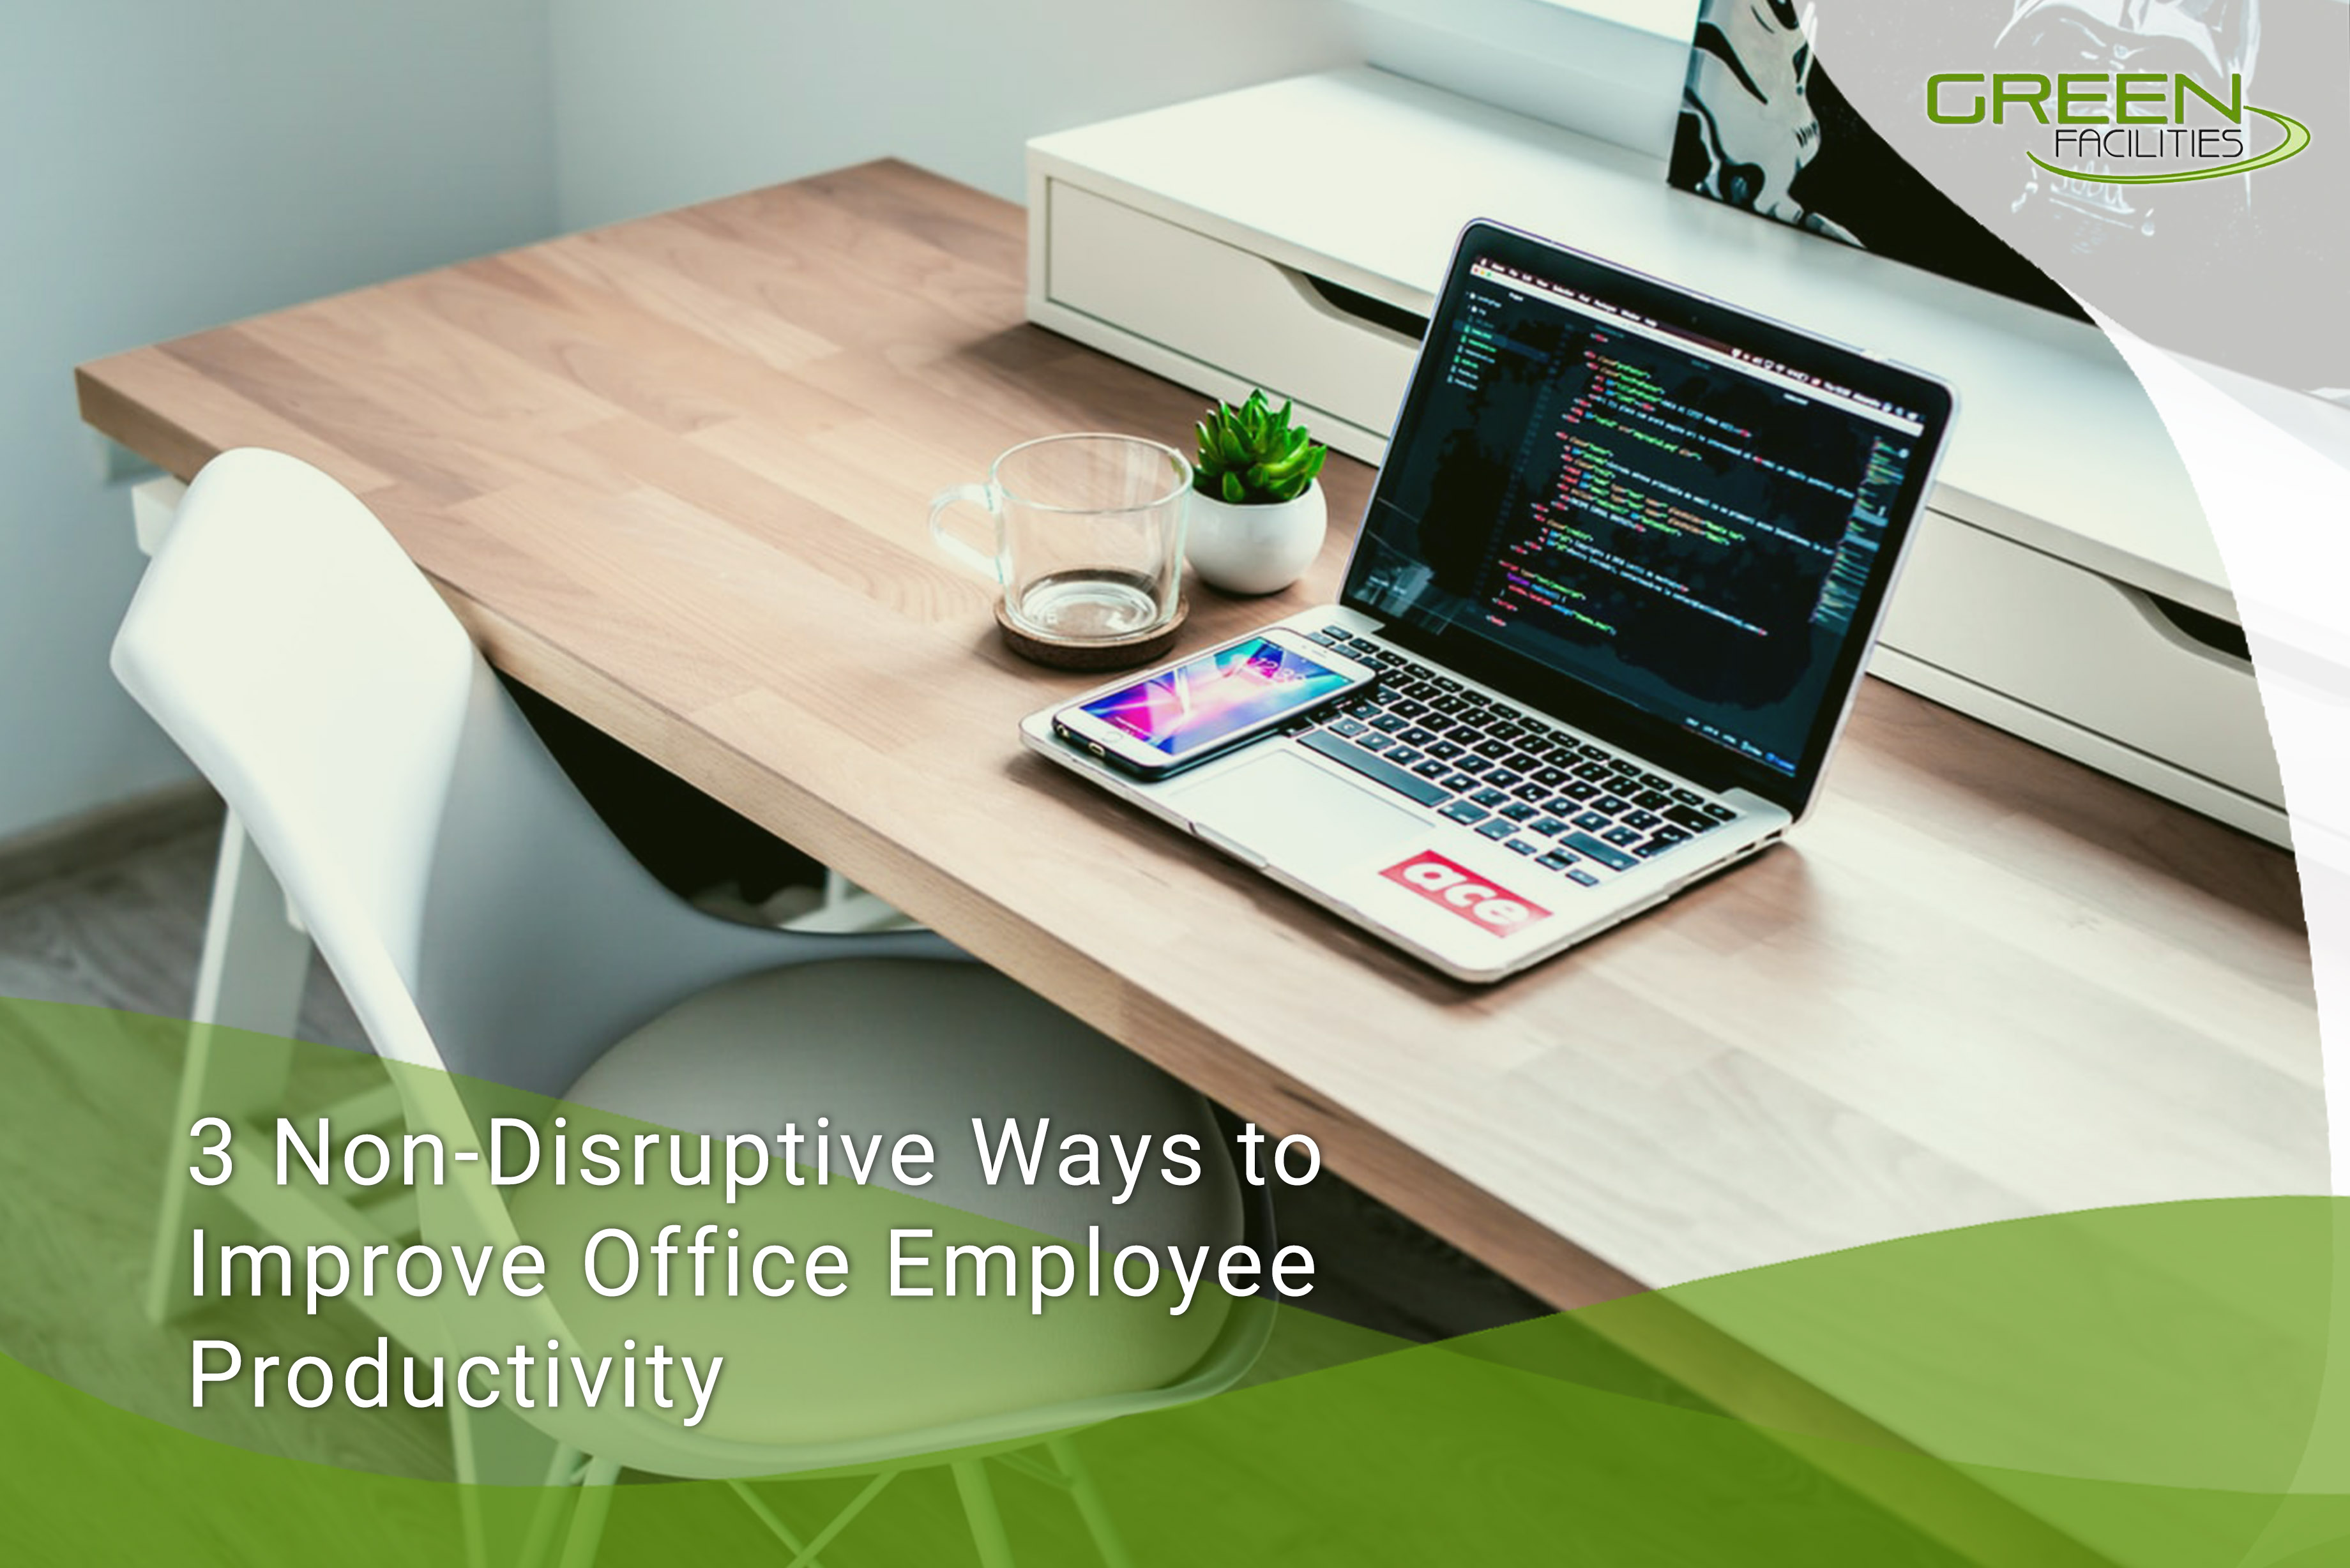 3 Non-Disruptive Ways to Improve Office Employee Productivity